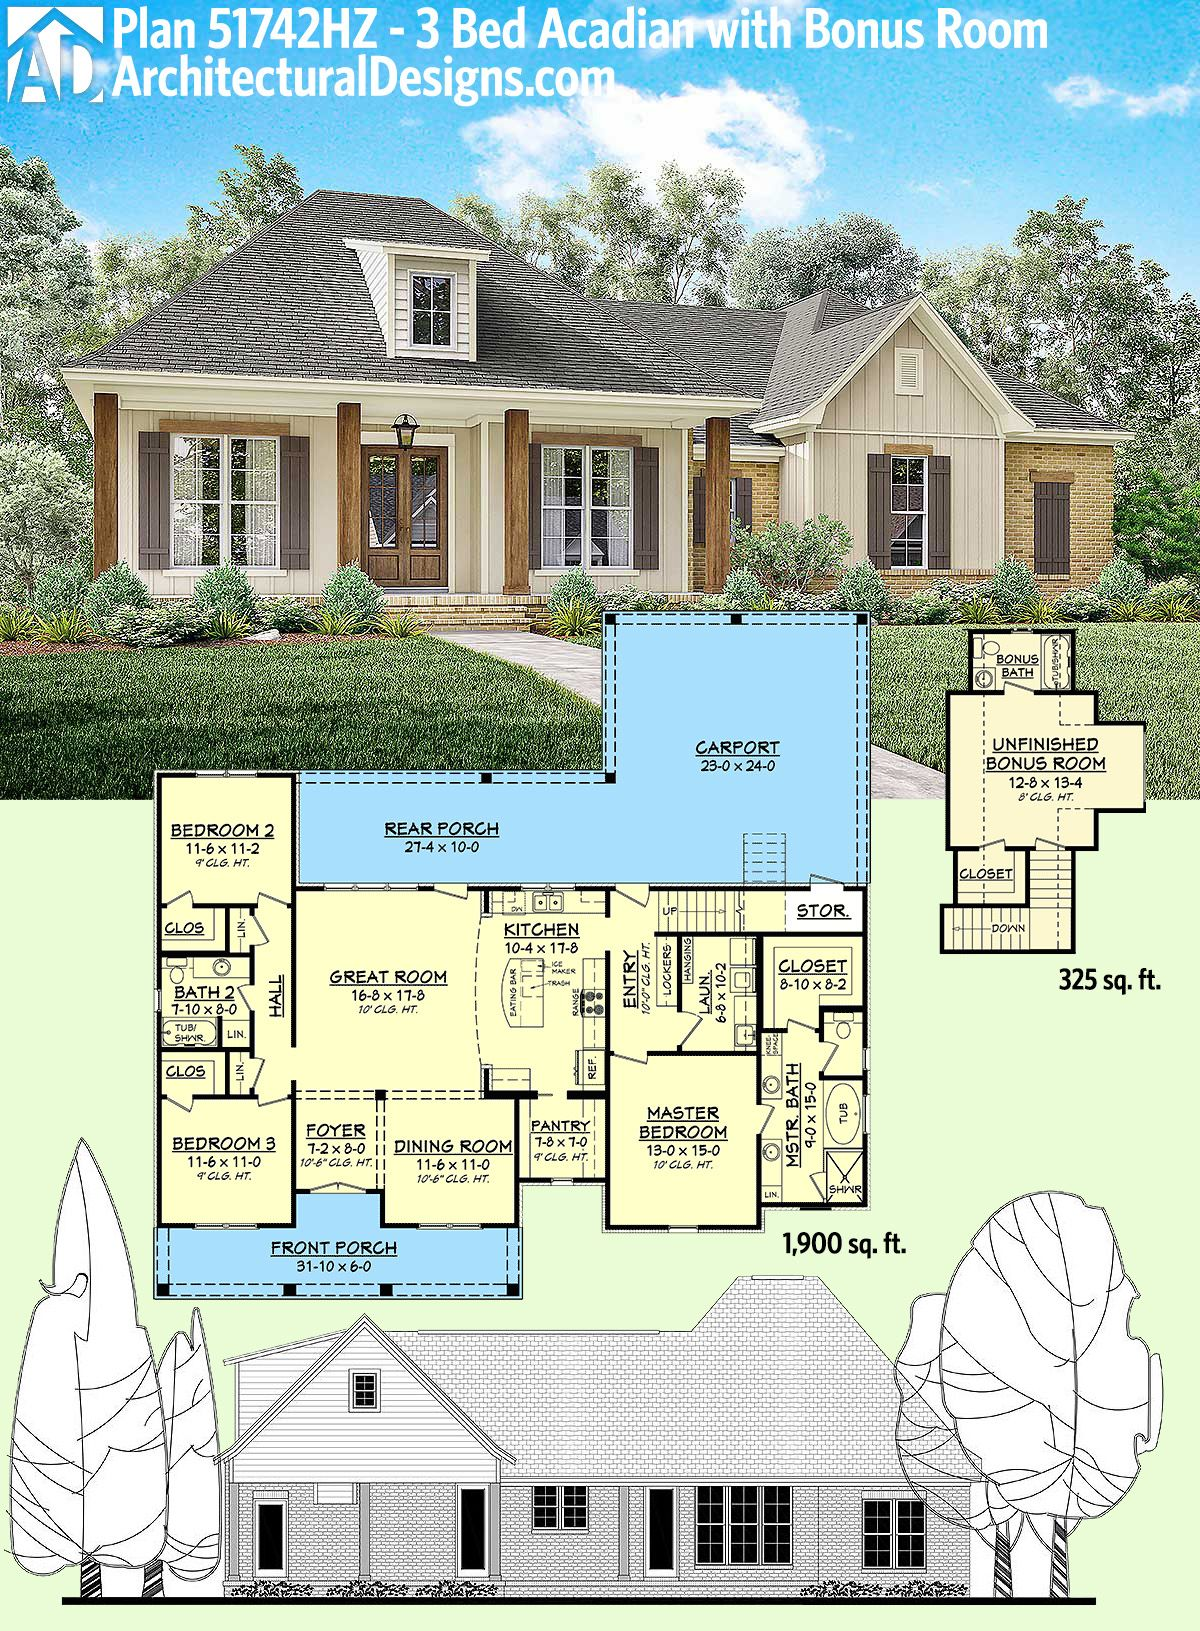 Plan 51742hz 3 bed acadian home plan with bonus over for 2 story acadian house plans